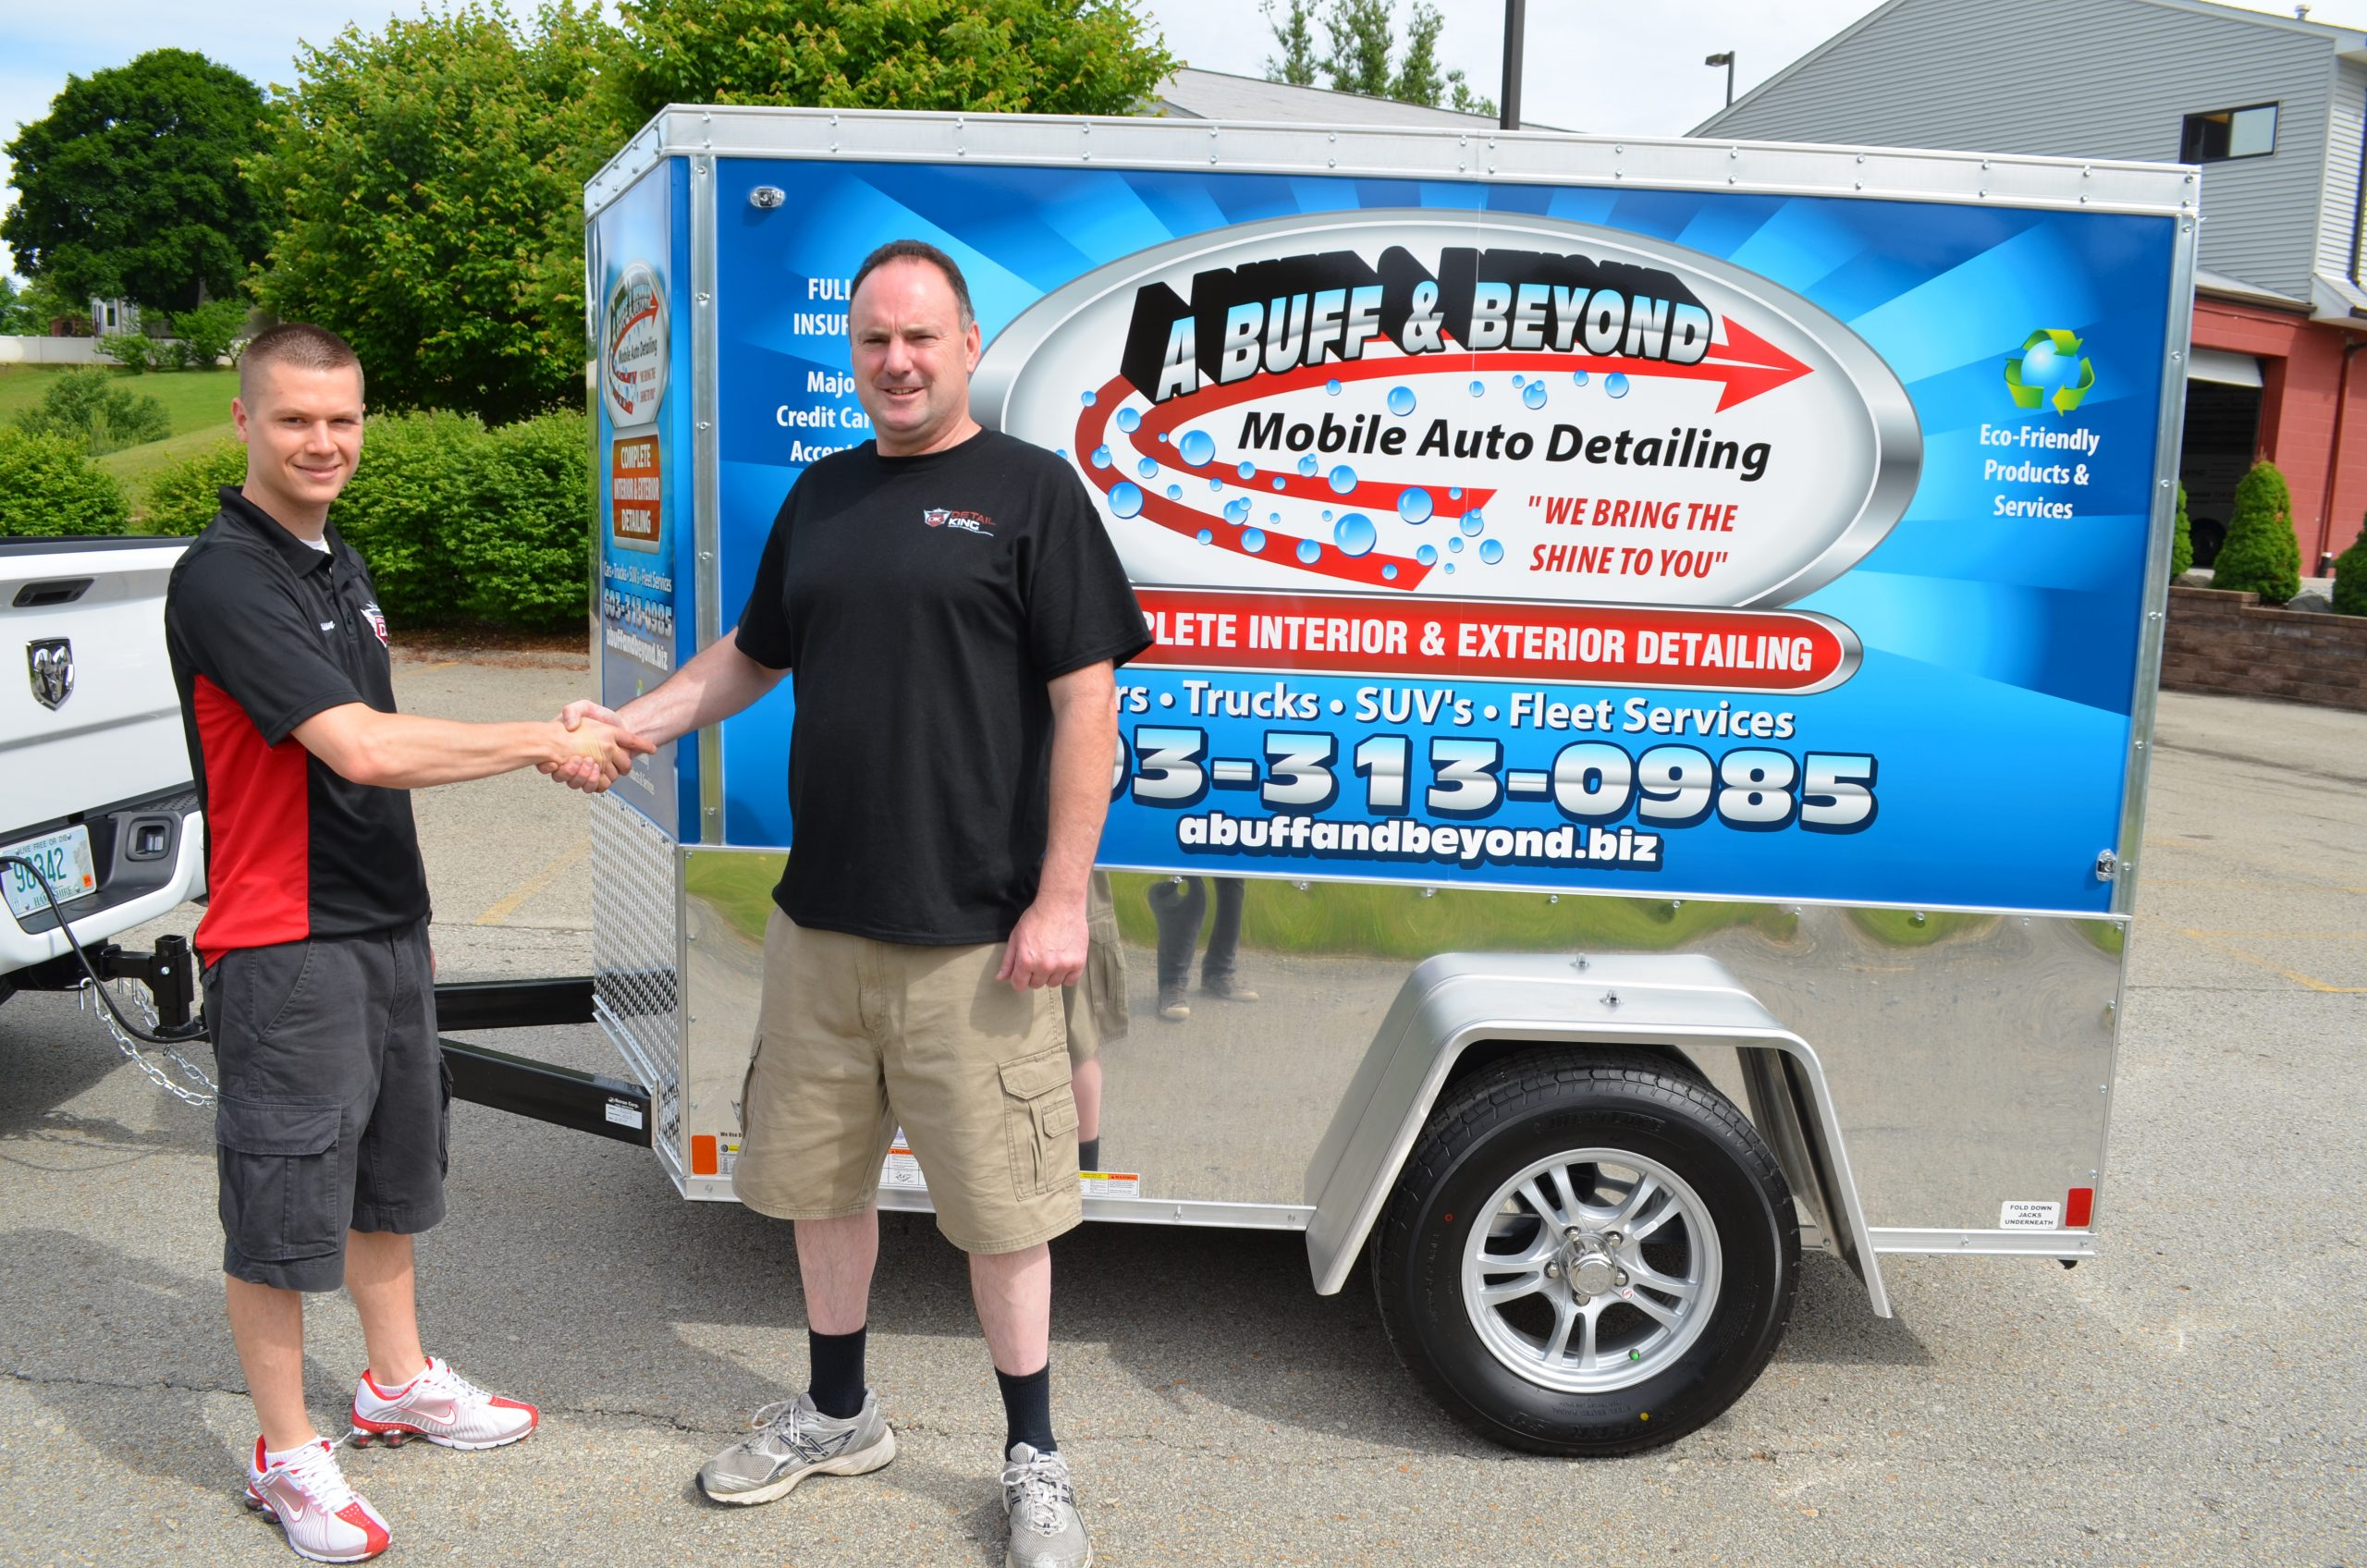 Mobile-detailing-trailer-a-buff-and-beyond